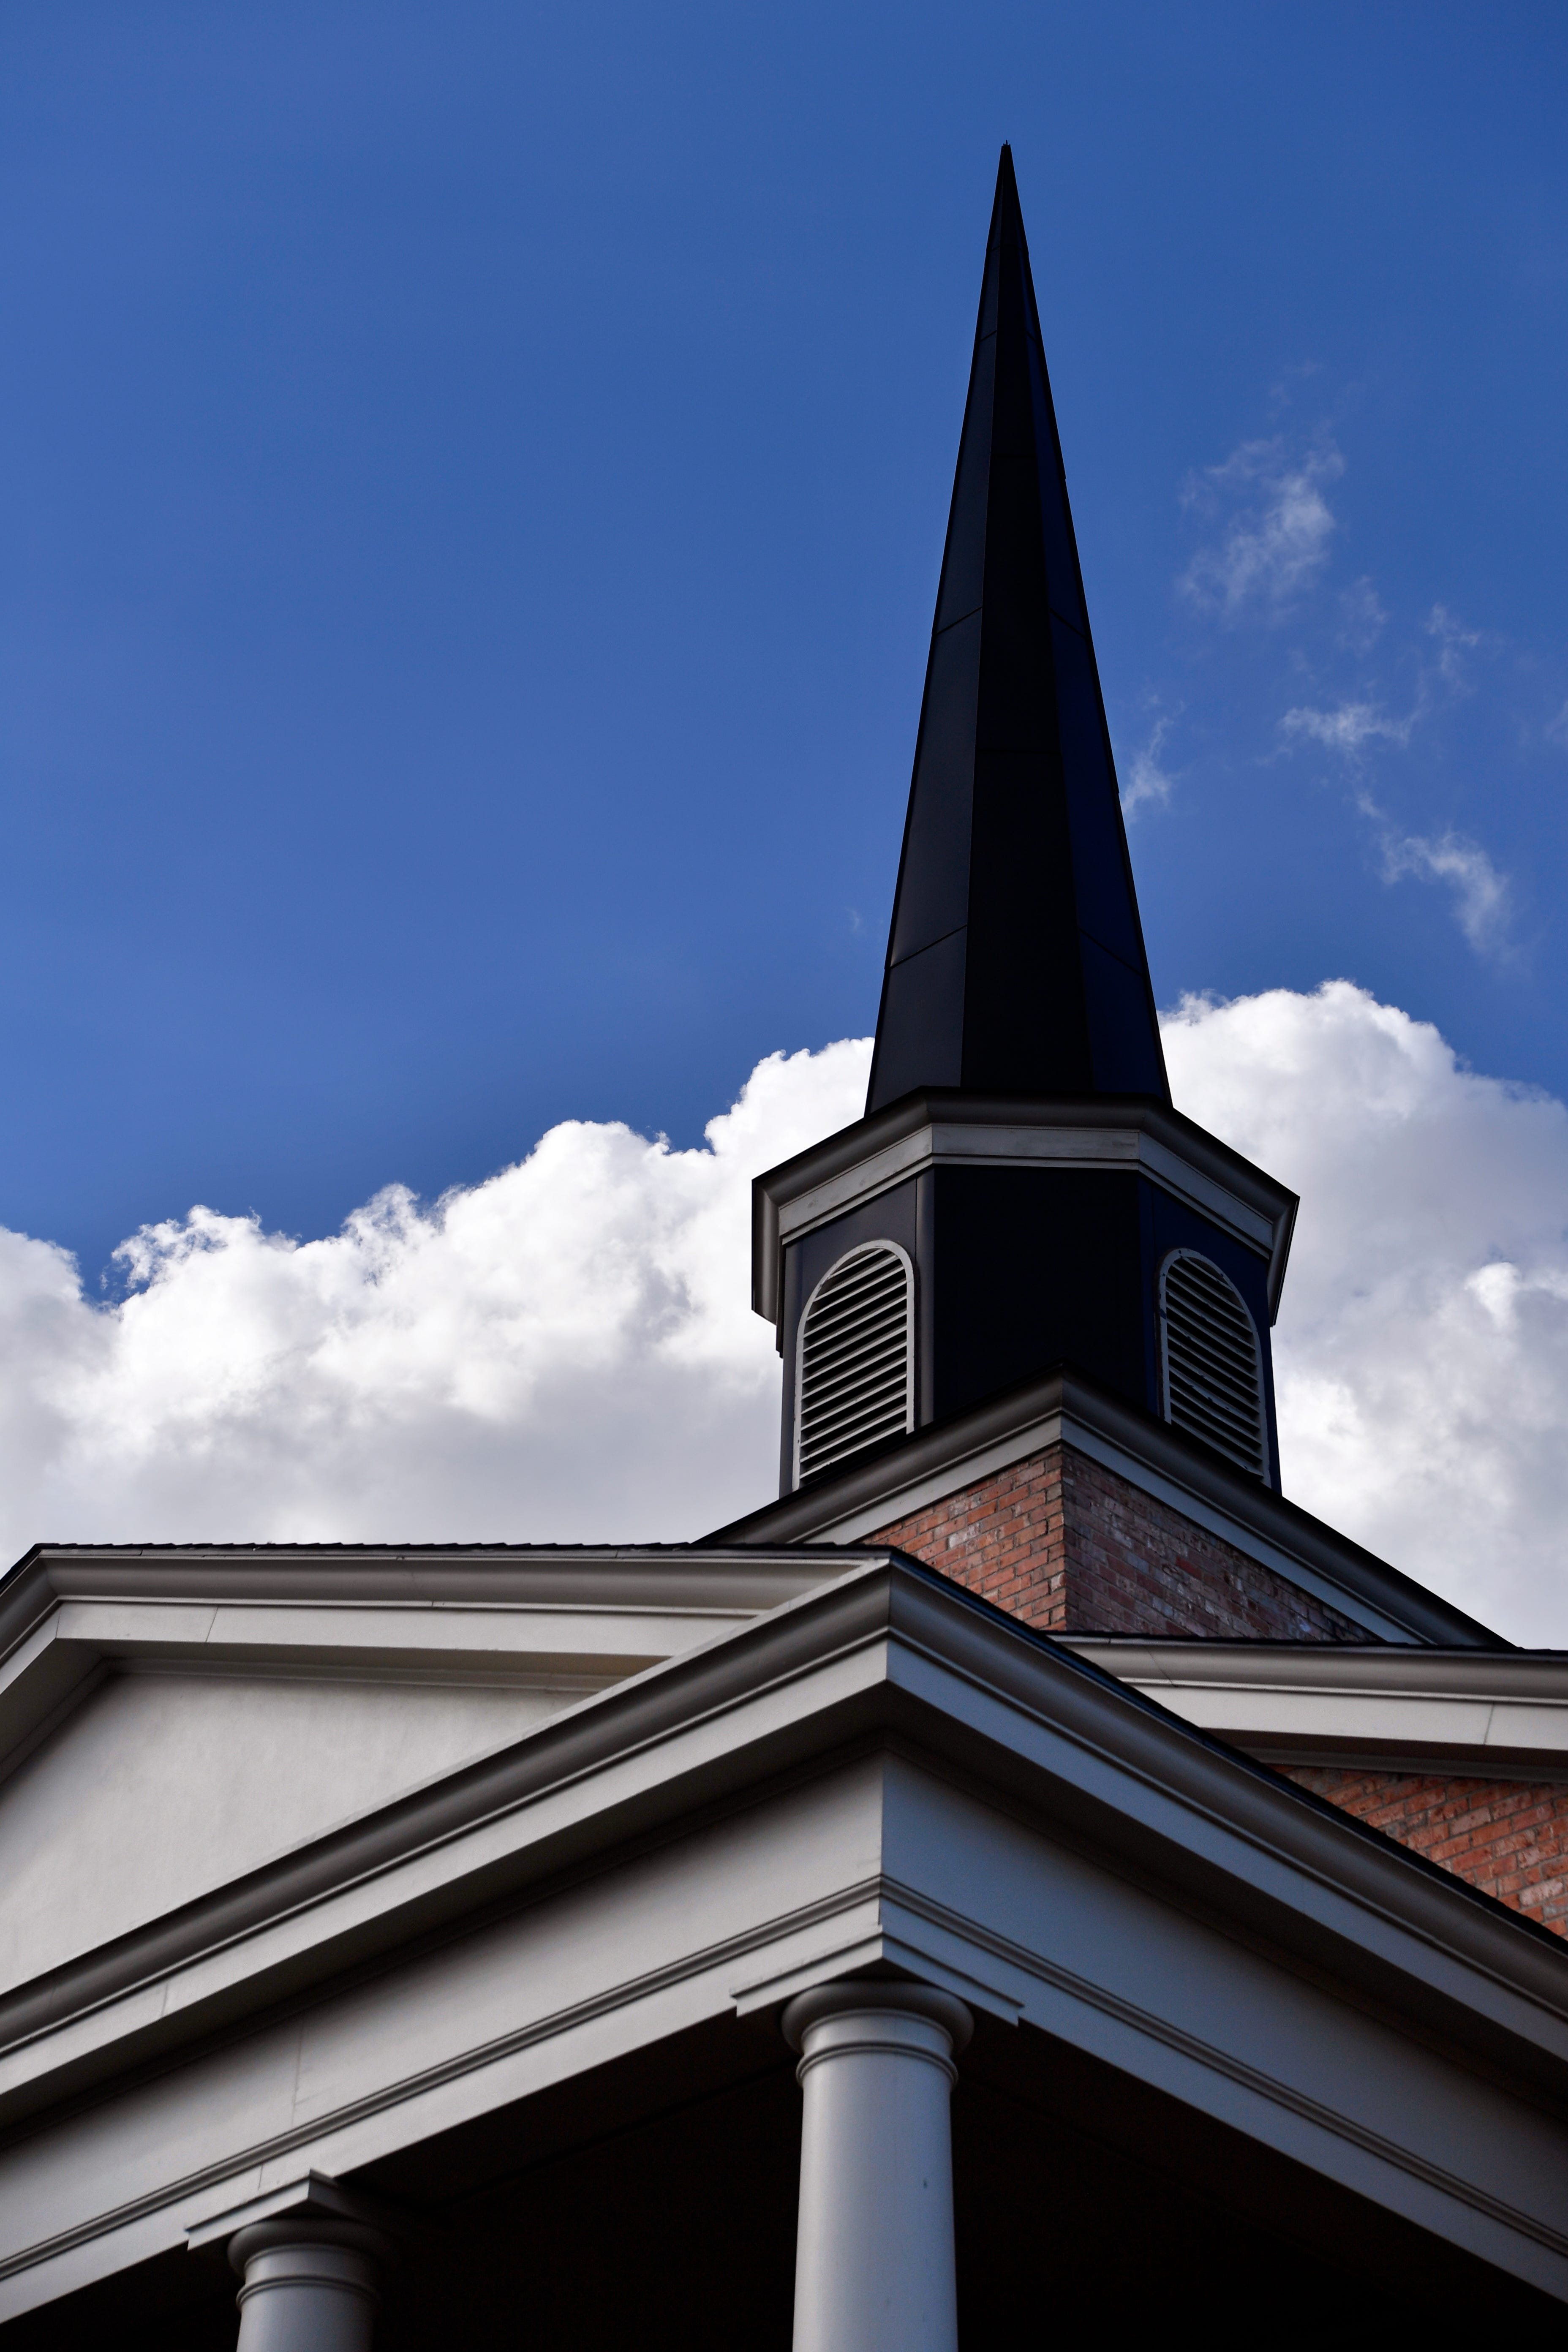 The First Christian Church steeple.